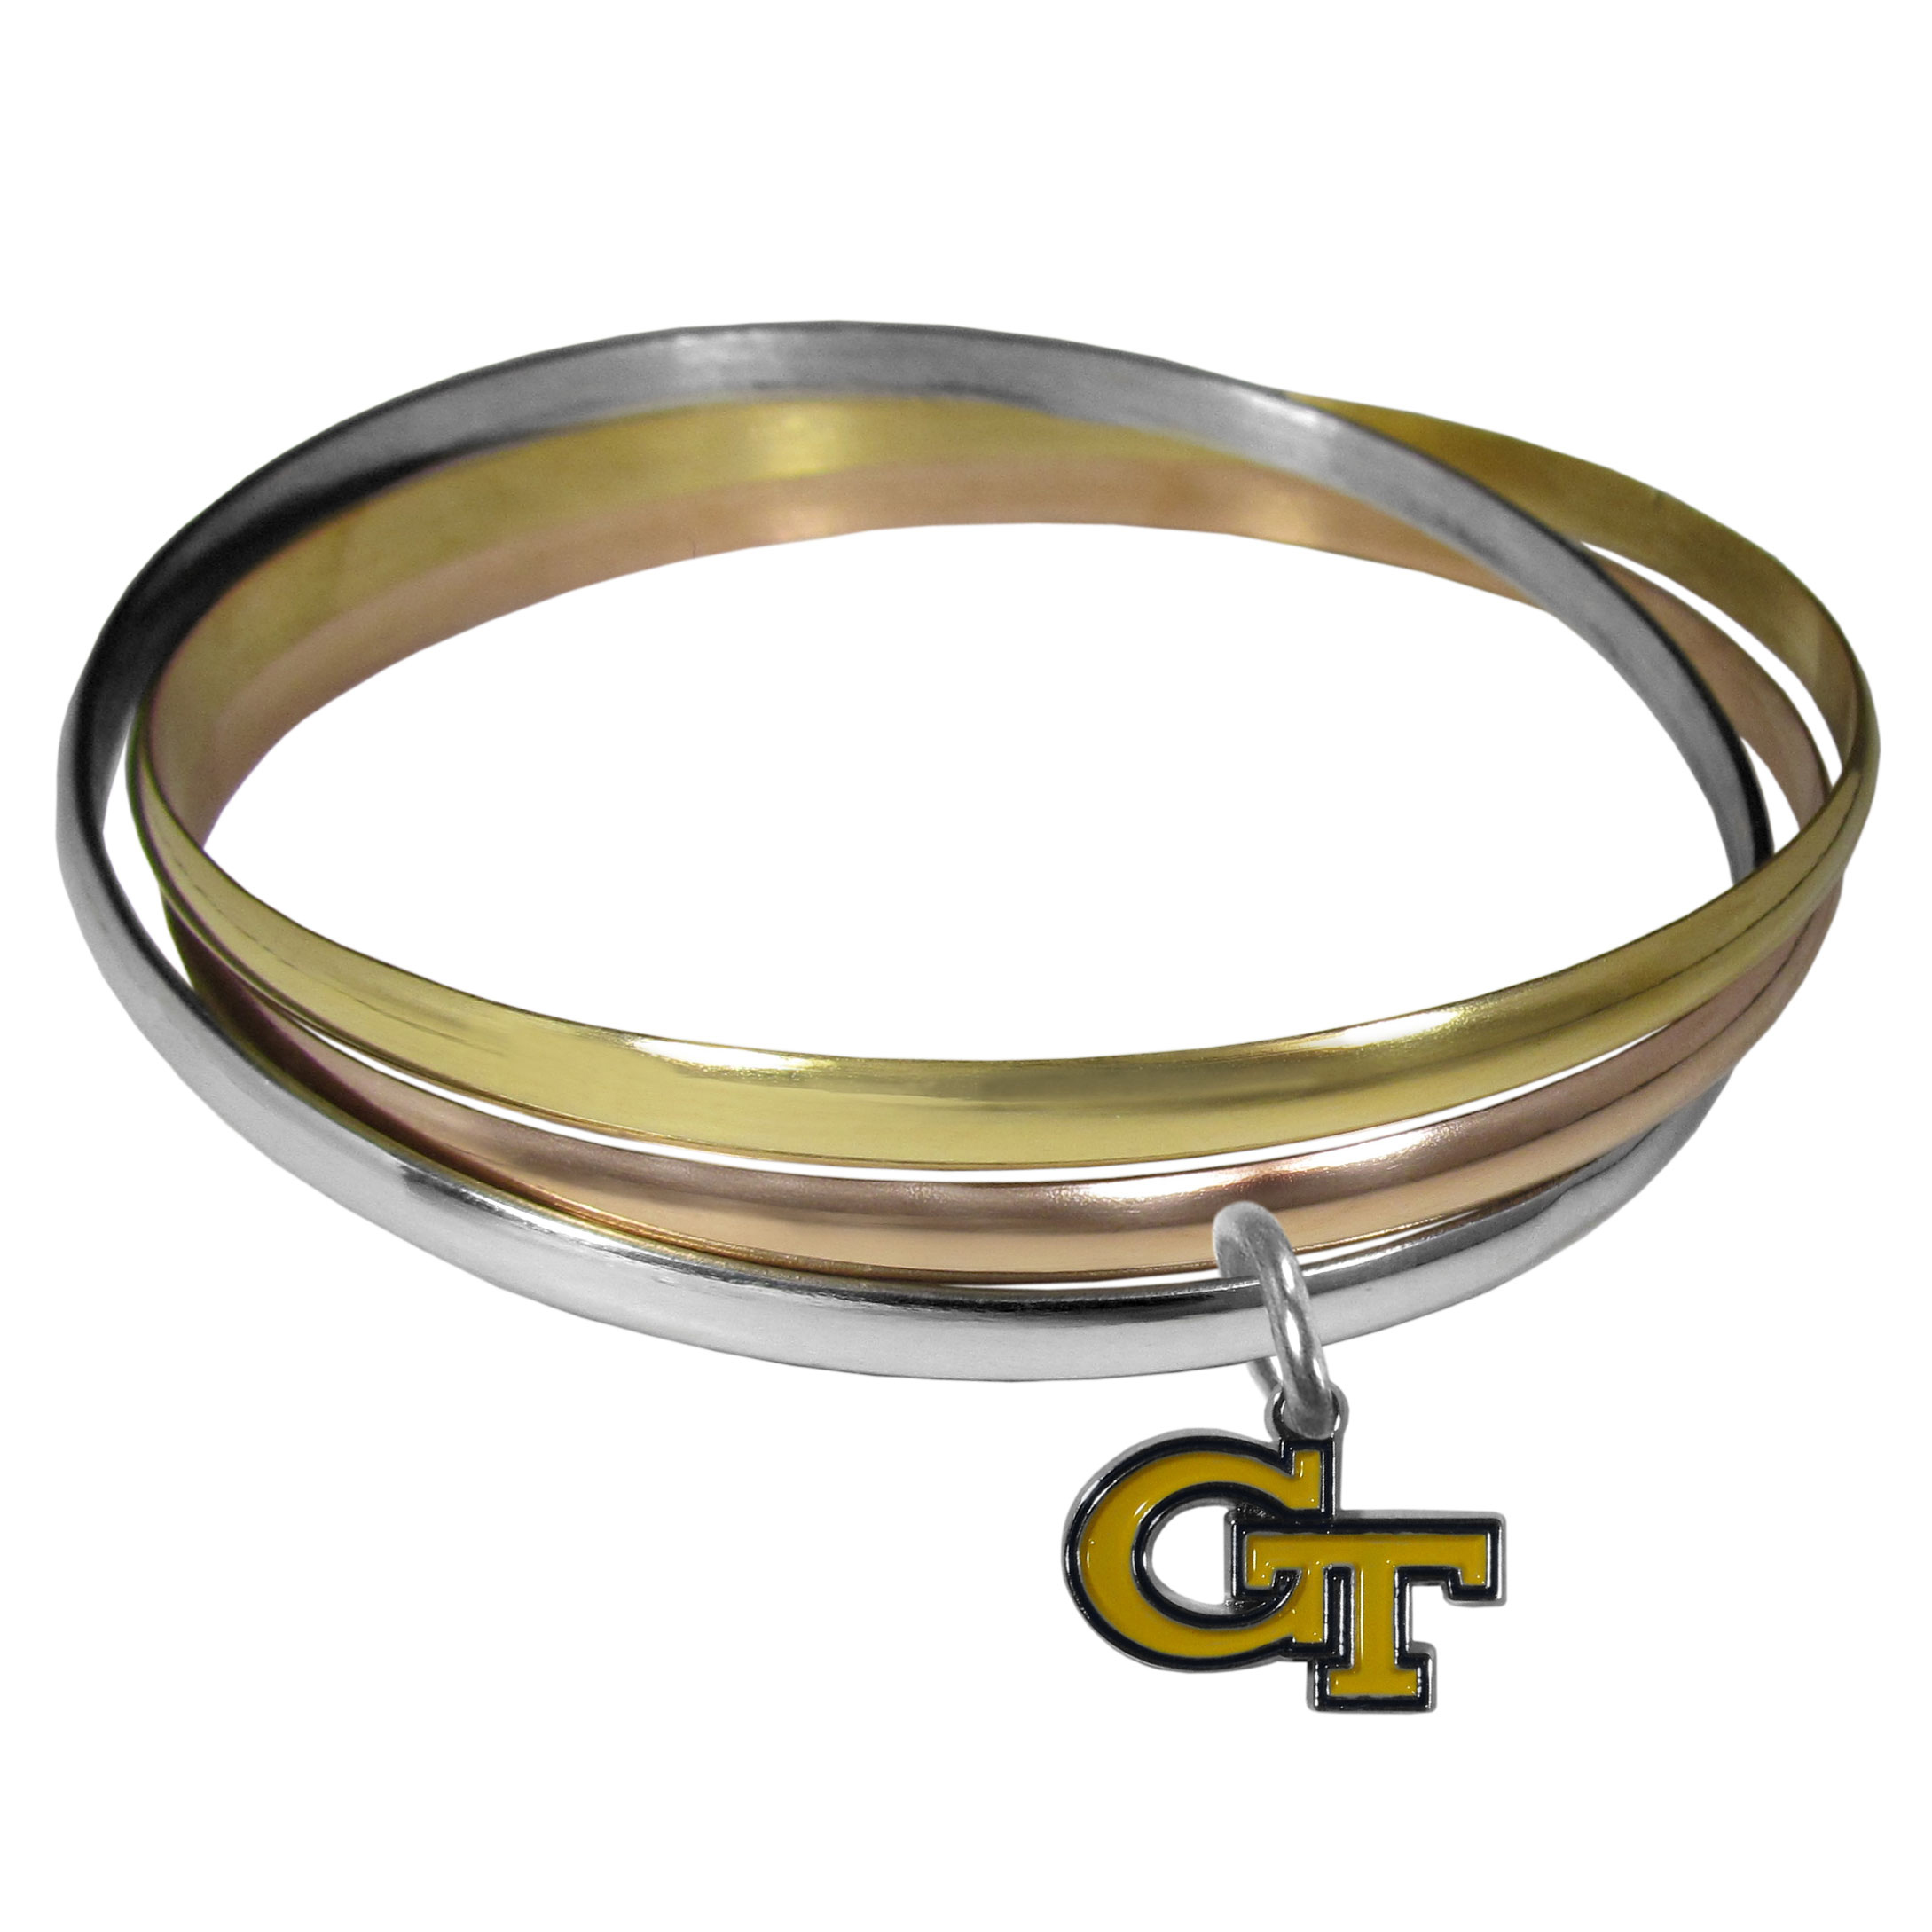 Georgia Tech Yellow Jackets Tri-color Bangle Bracelet - These beautiful bangles come in a interlocking style and feature a fully cast Georgia Tech Yellow Jackets charm with enameled team colors. The bracelet has a silver toned bangle, gold tone bangle and brass toned bangle.